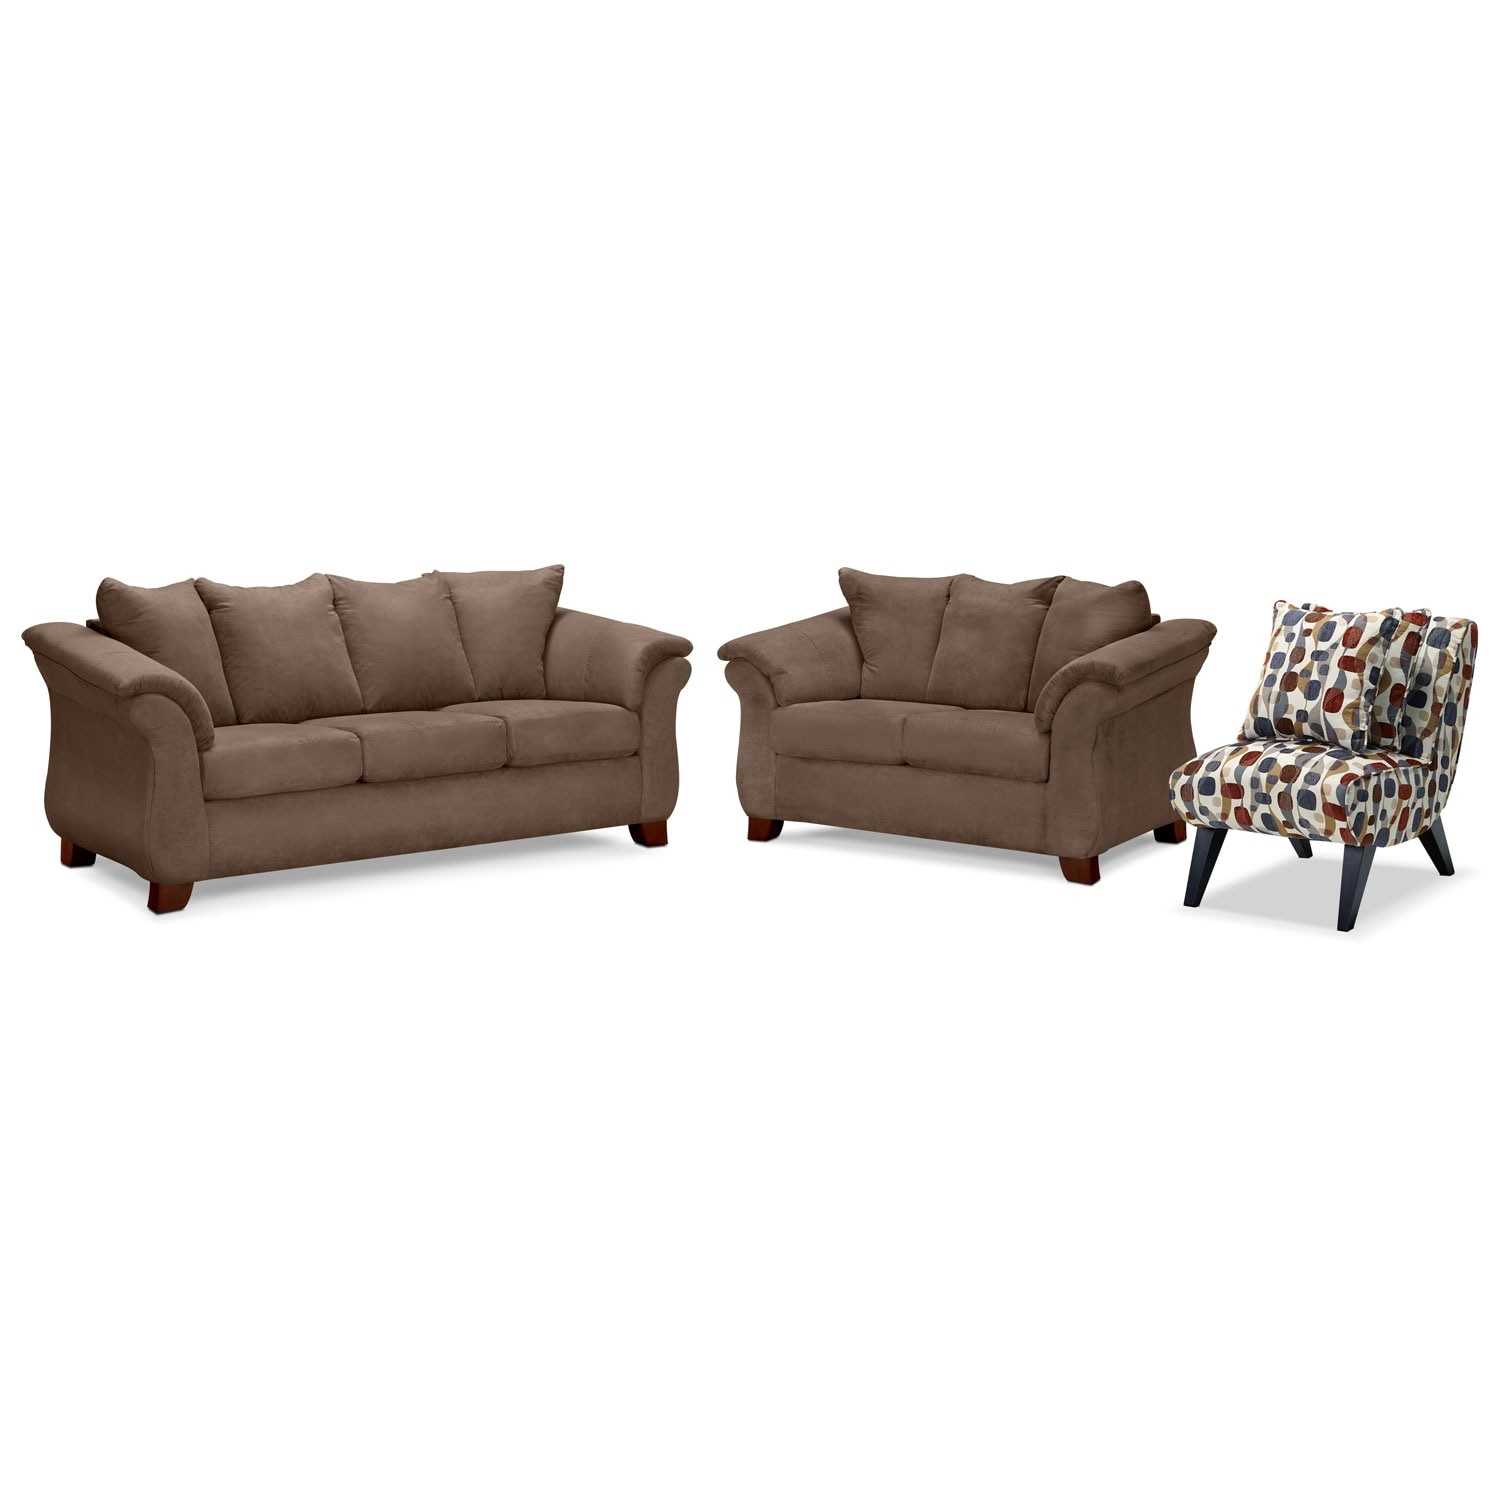 Living Room Furniture - Adrian Taupe 3 Pc. Living Room w/ Accent Chair